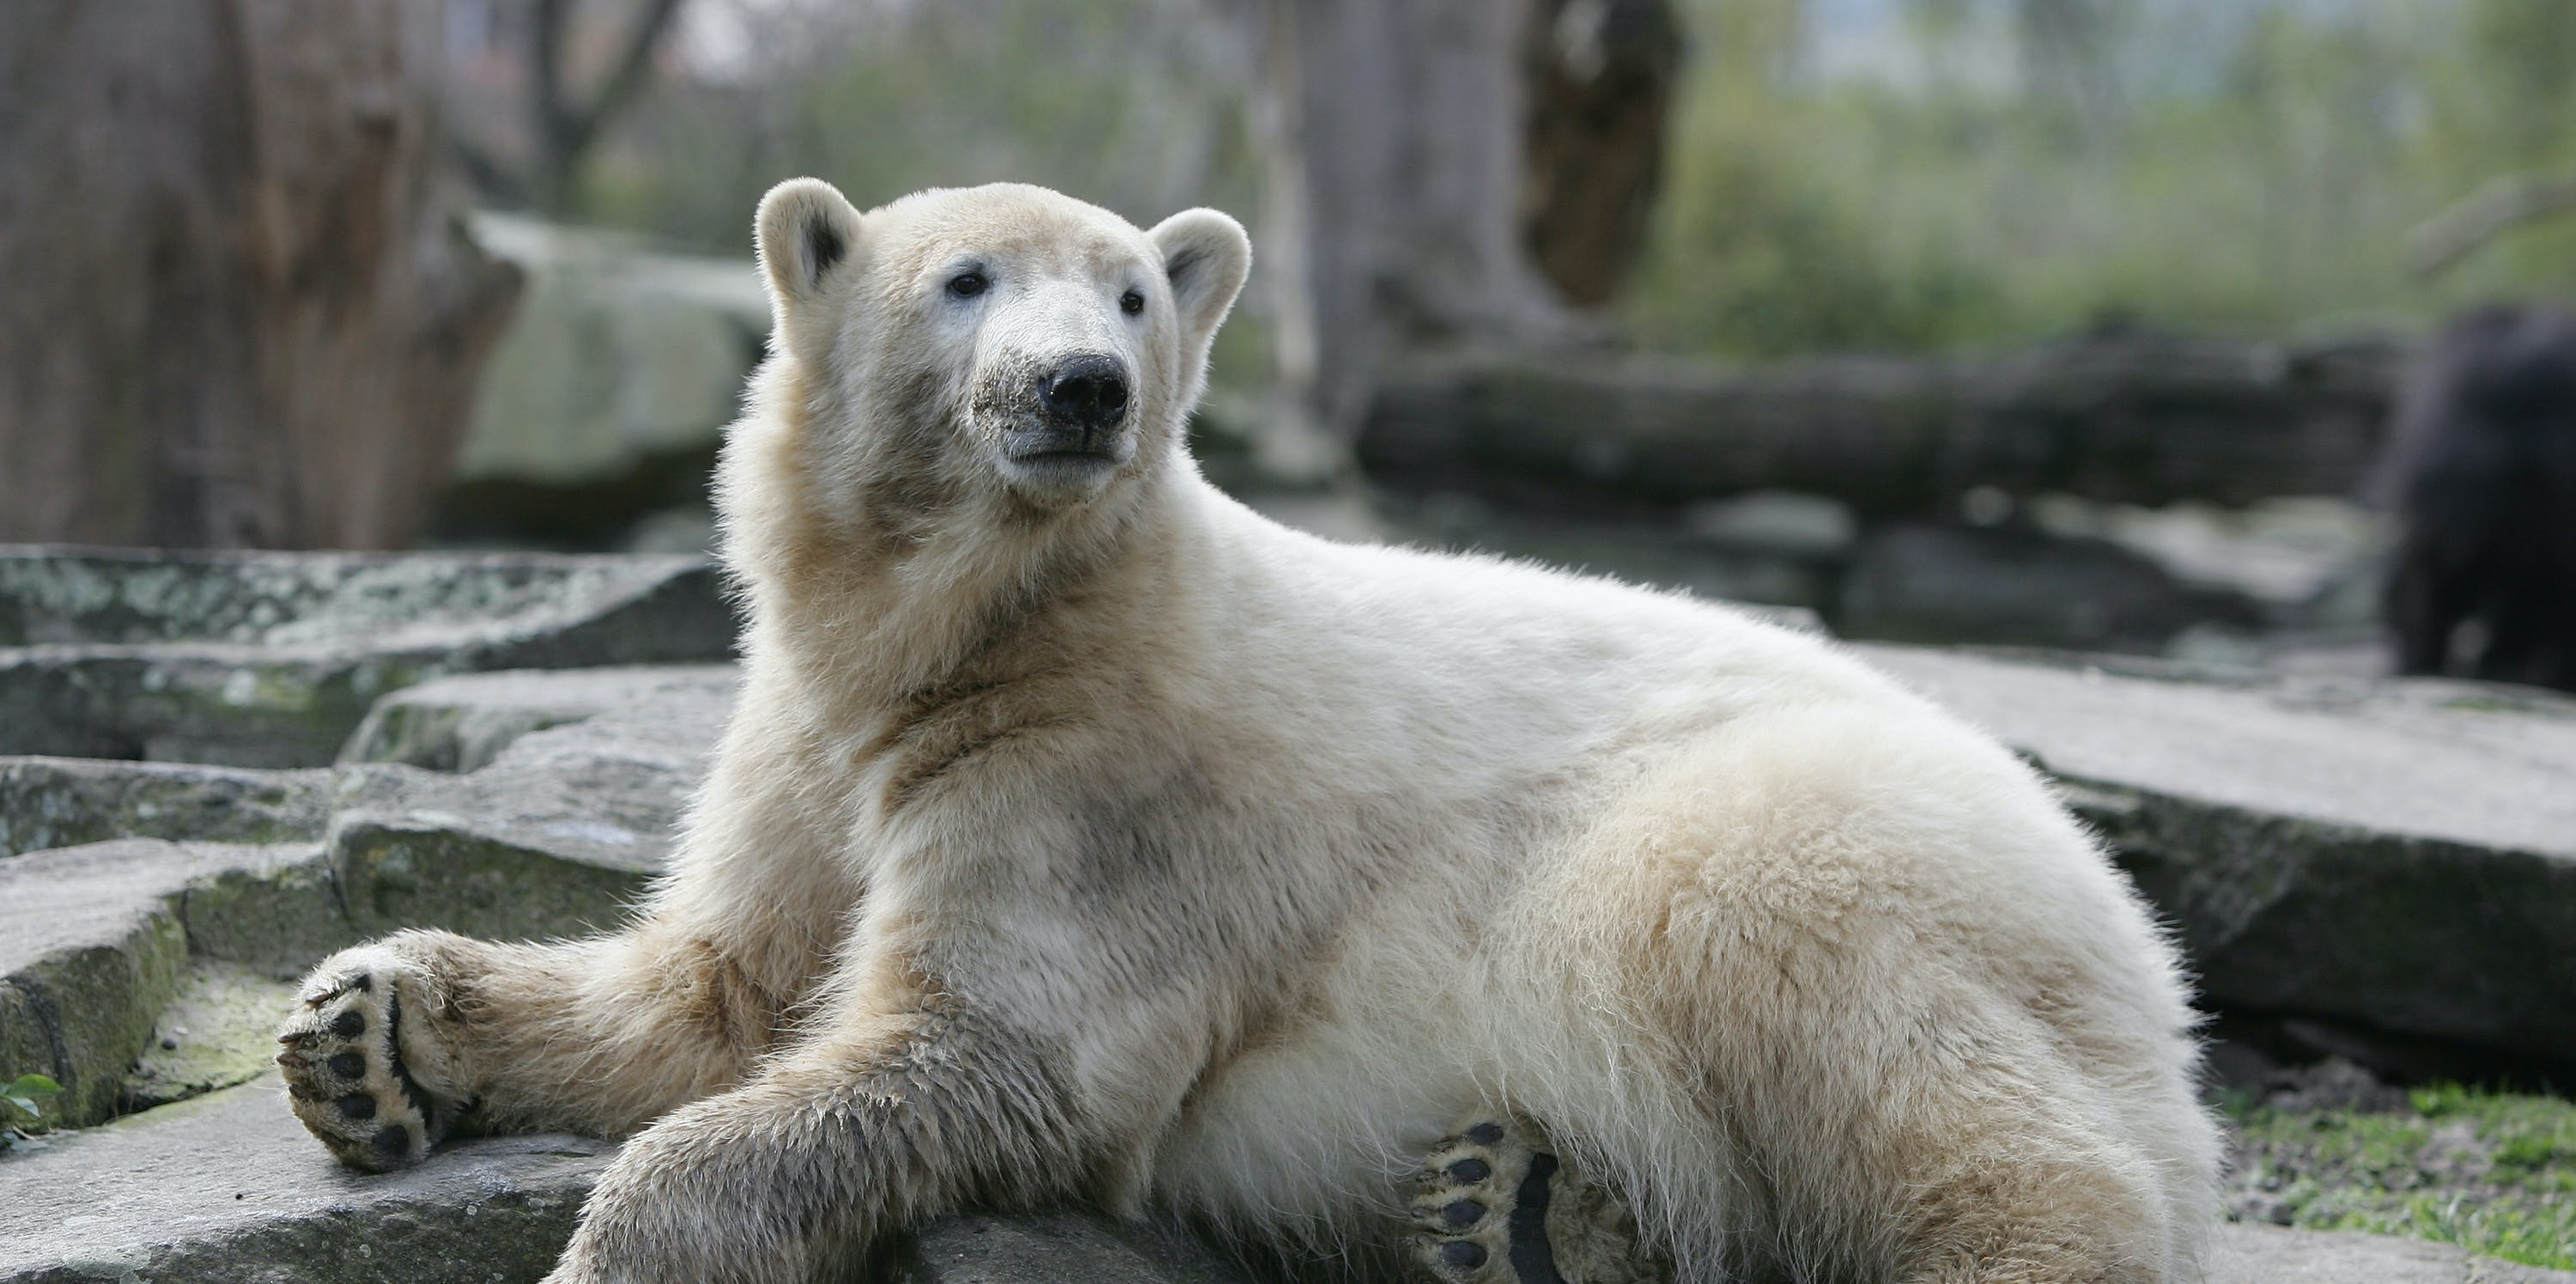 Polar bear Knut sits in his enclosure at the zoo on April 8, 2008 in Berlin, Germany. Knut, who became a world star when he survived rejection by his mother, has to share the media's interest with a female polar bear cub born at the zoo in Nuremberg, southern Germany, where Flocke is to be introduced today to the public.